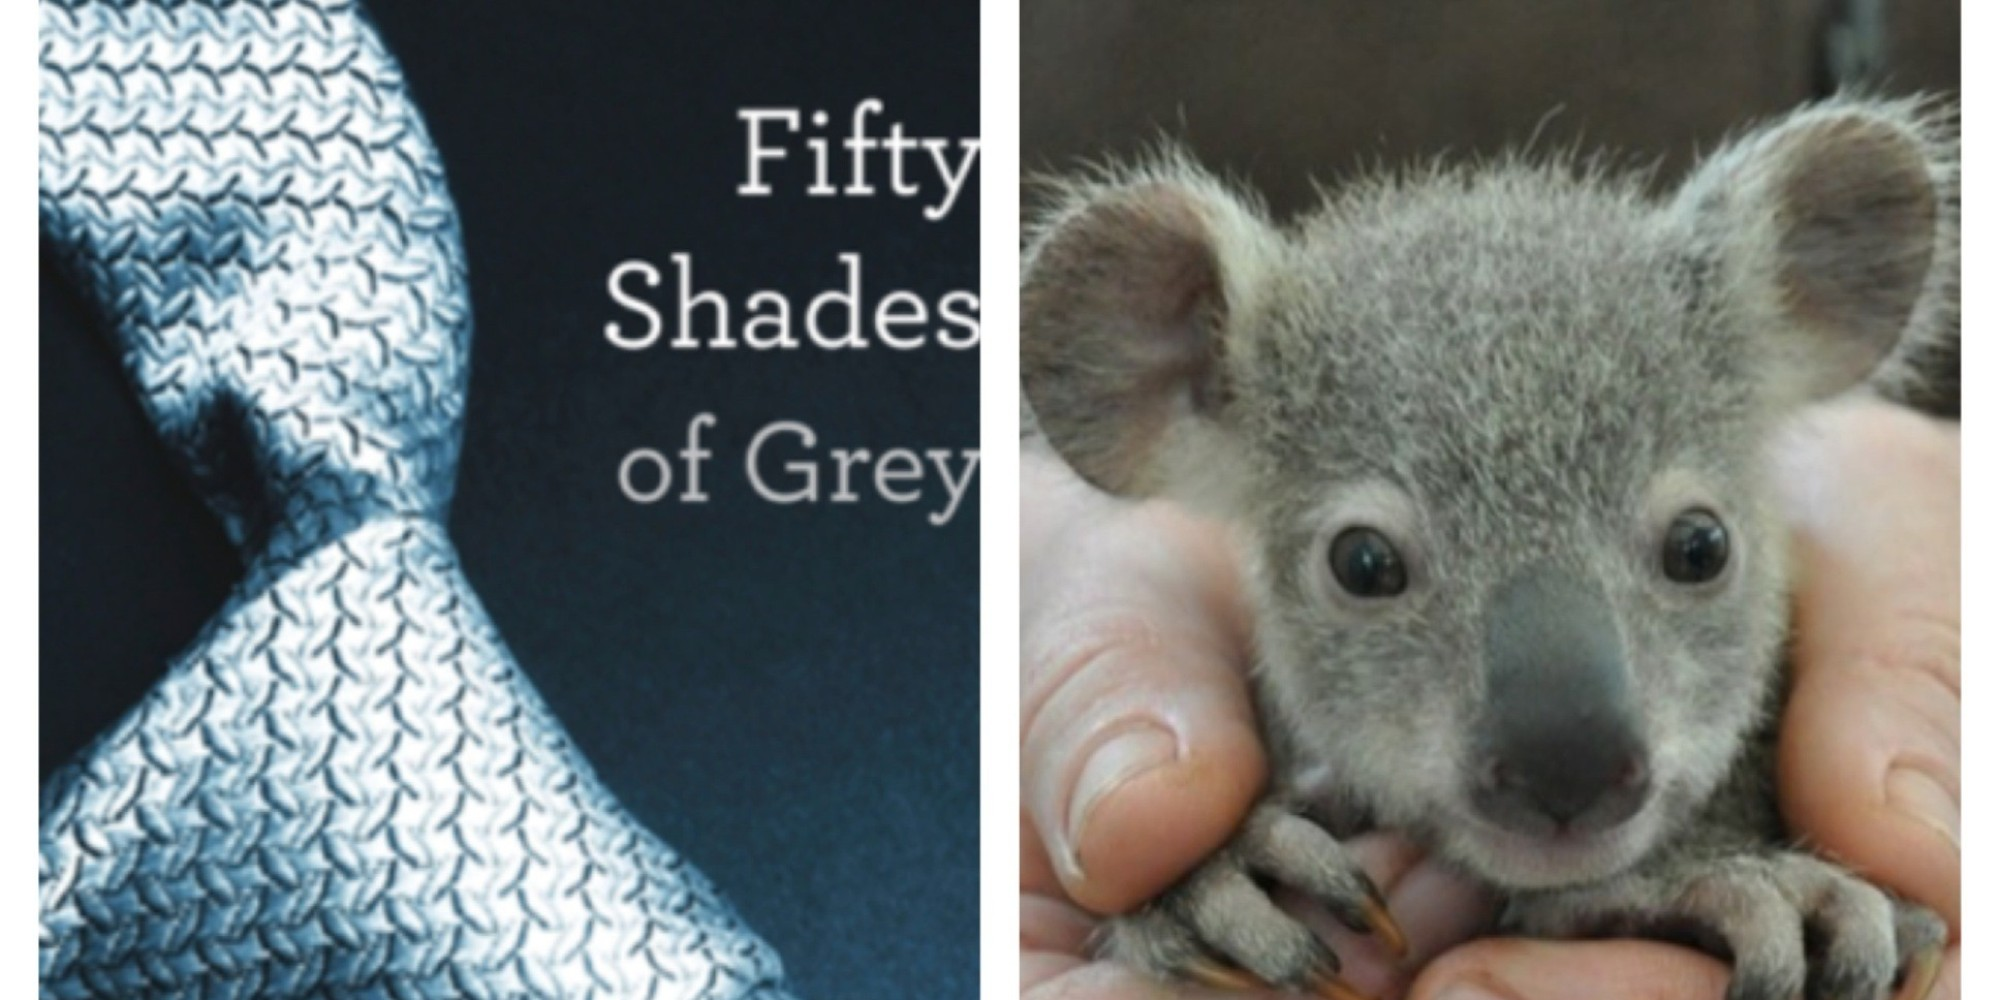 Fifty Shades Of Grey Adorable Animals The Version You